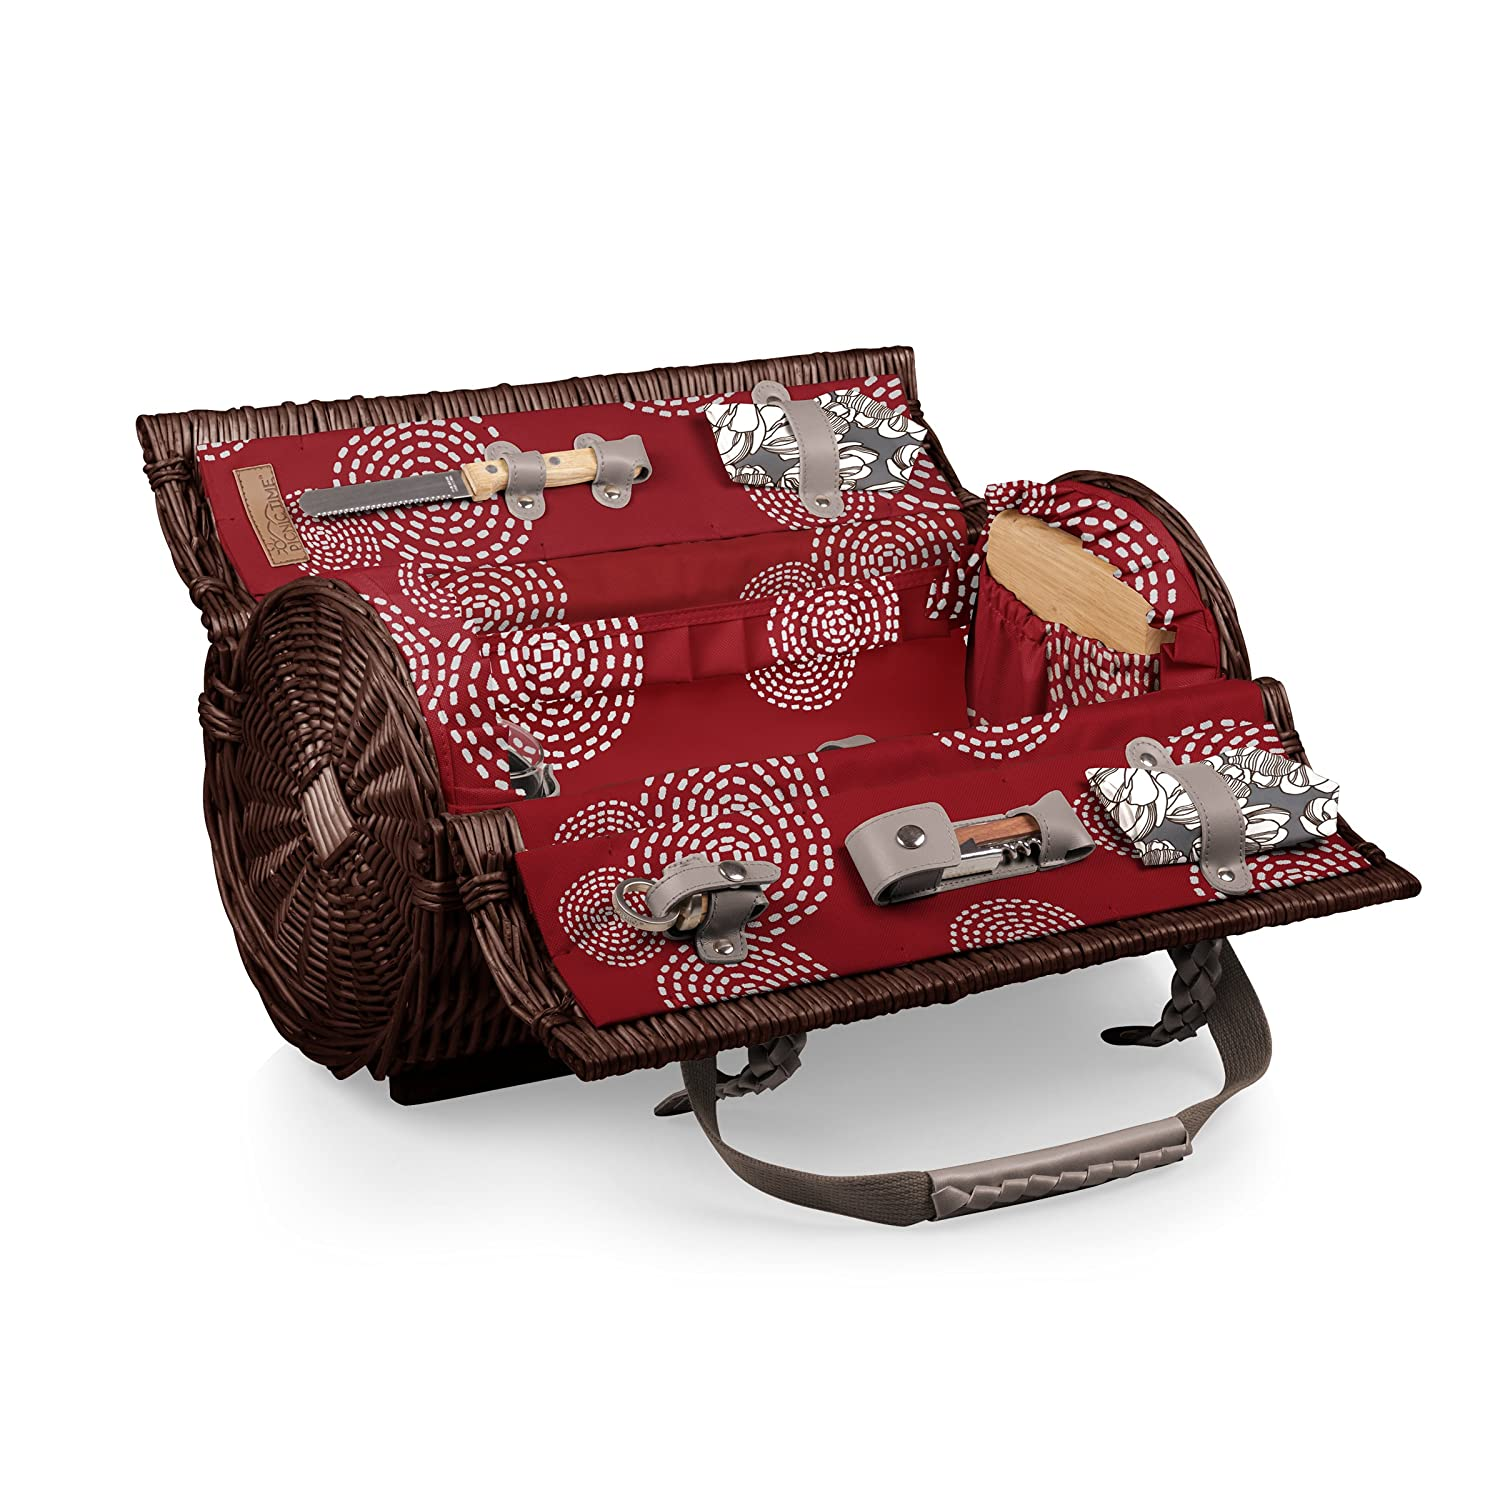 Adeline Collection Picnic Time Verona Insulated Wine Basket with Wine//Cheese Service for Two